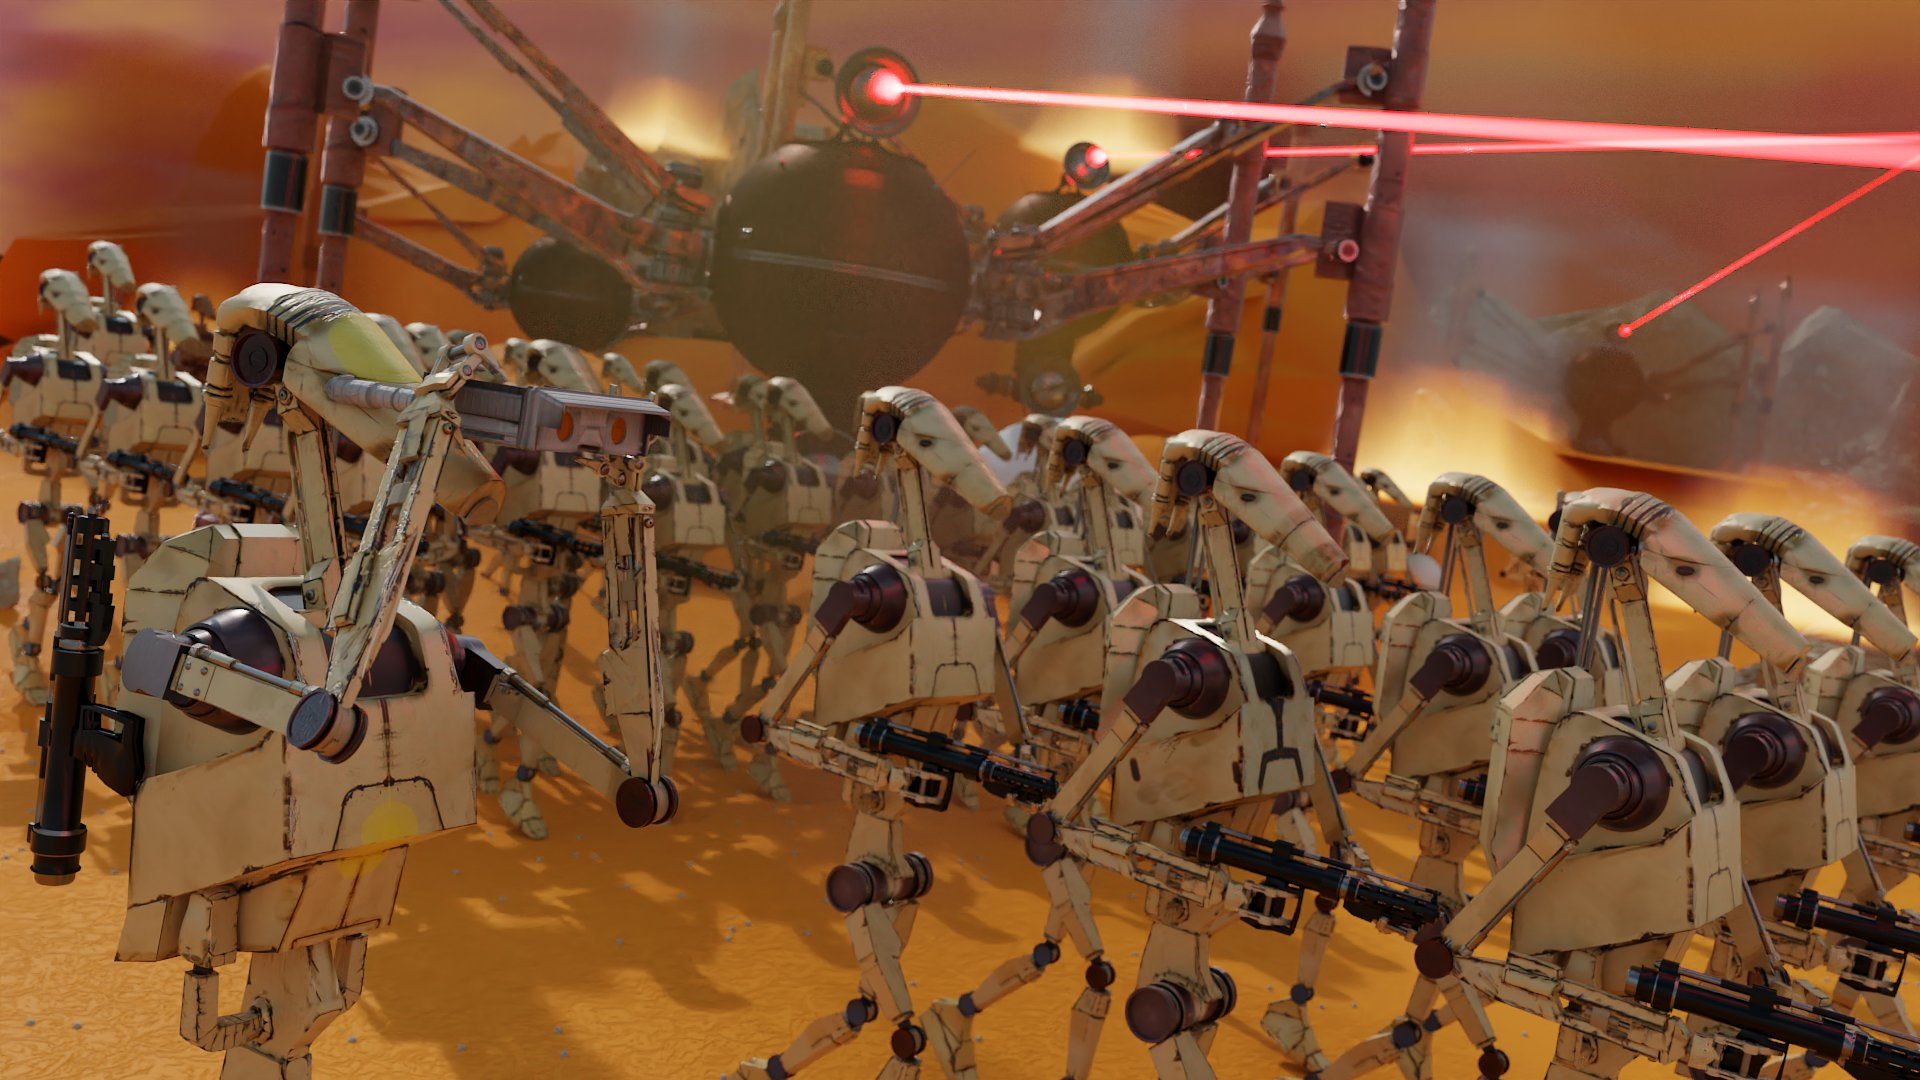 Geonosis preview image 1